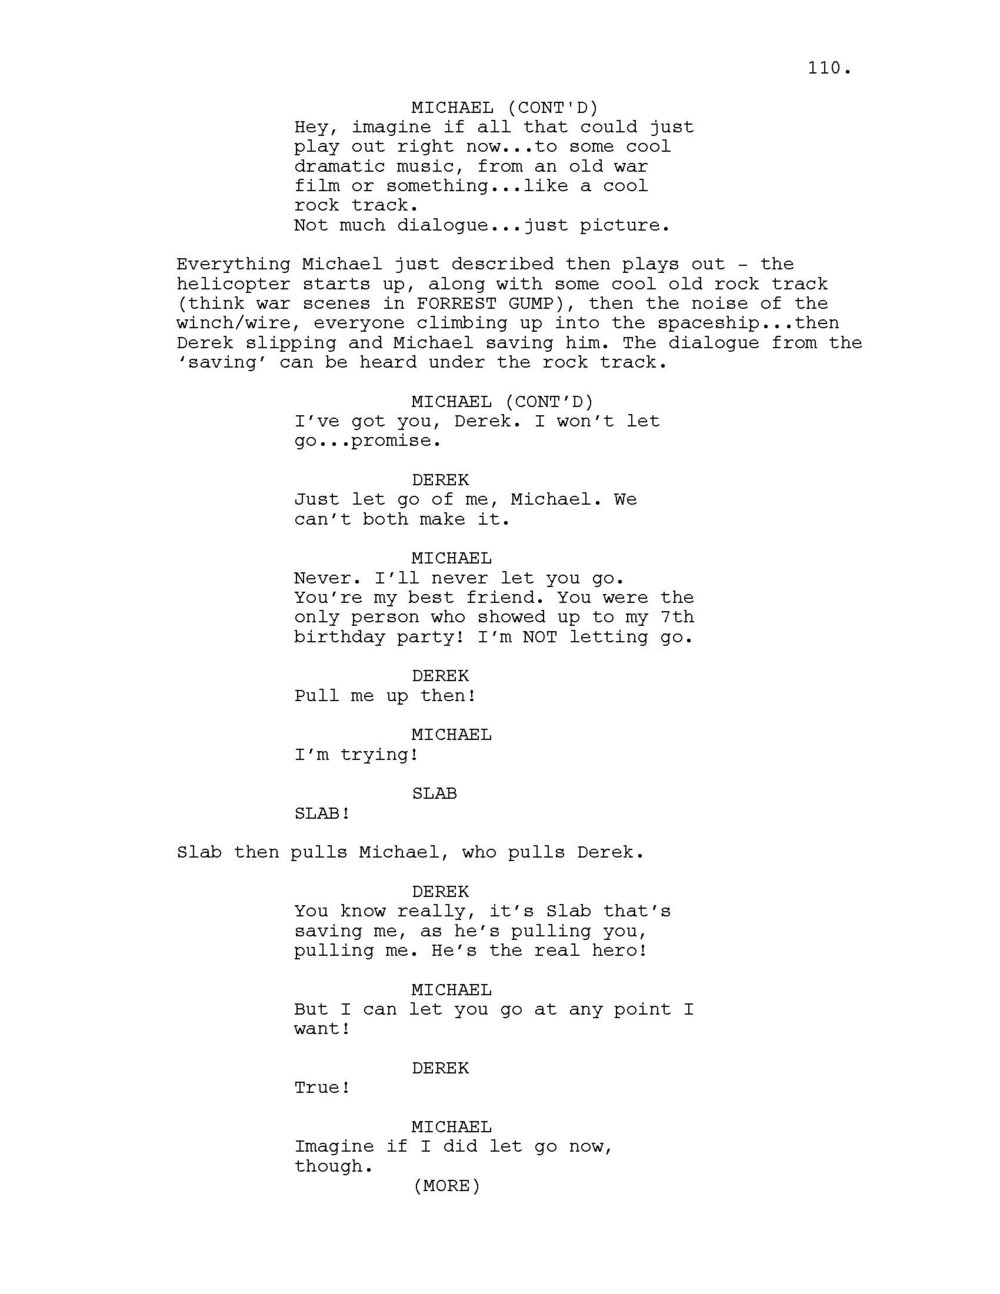 INVISIBLE WORLD SCRIPT_Page_111.jpg